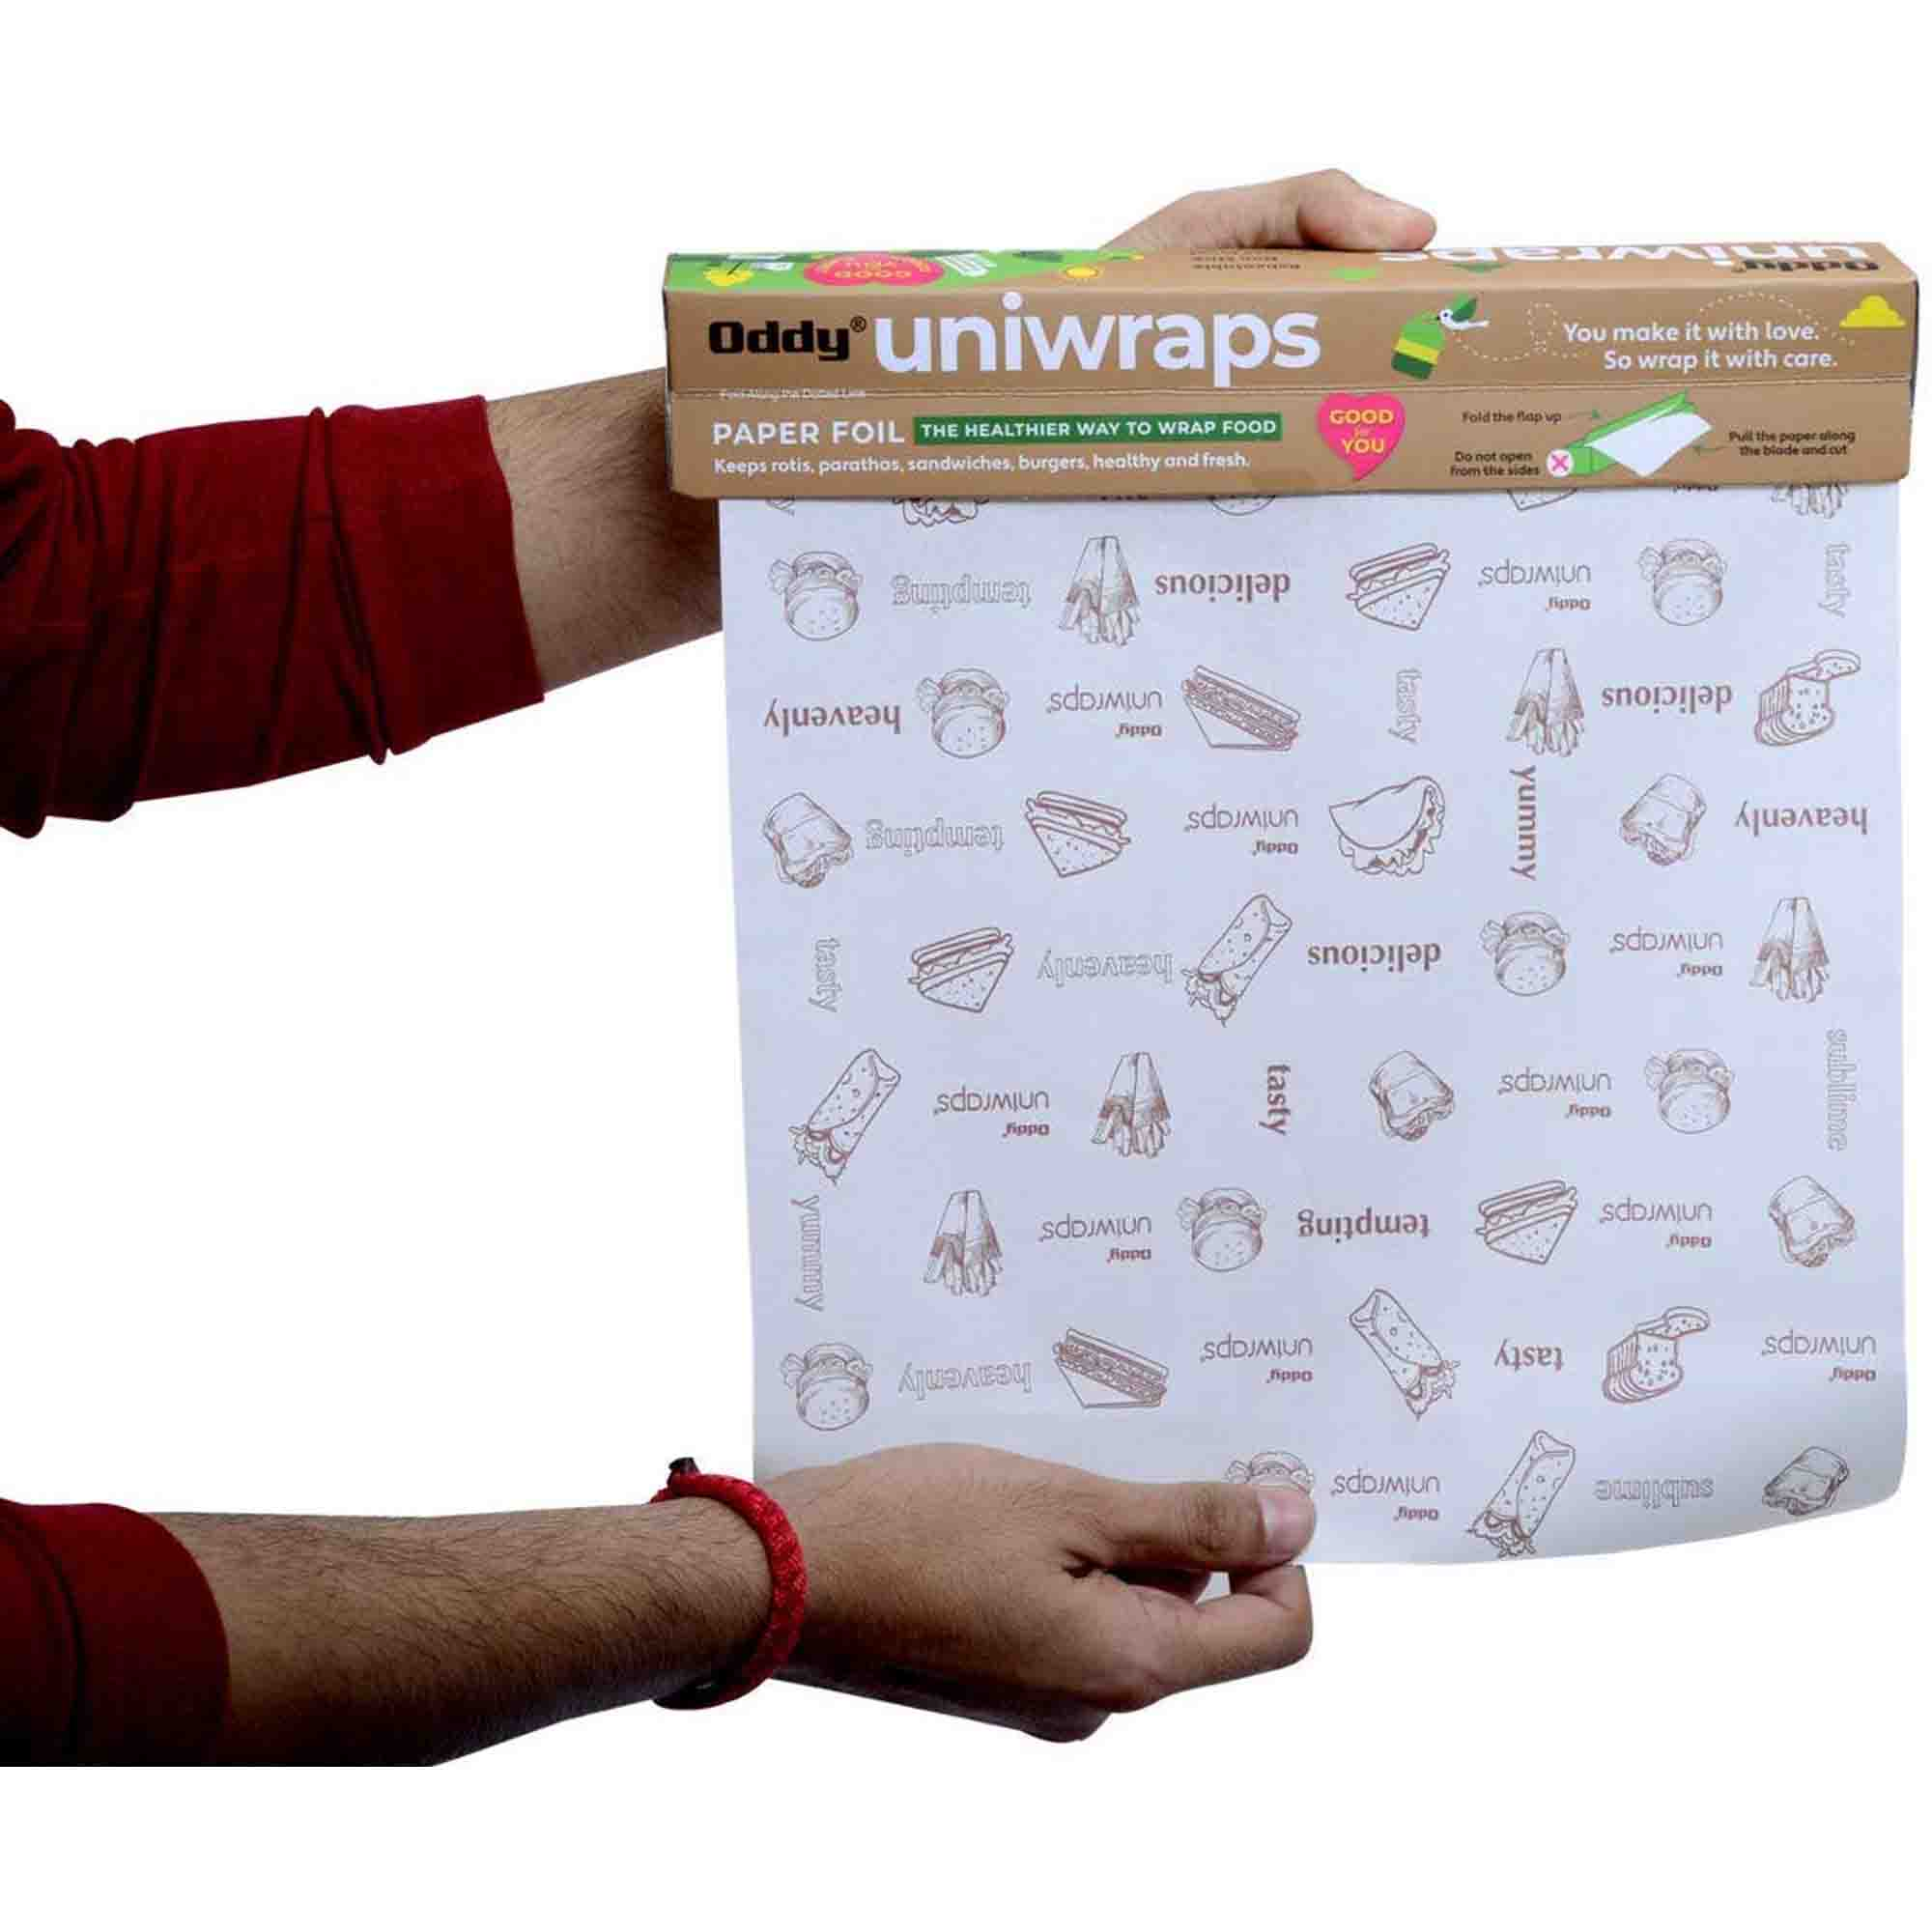 Oddy Uniwraps Food Wrapping Paper (20 m)